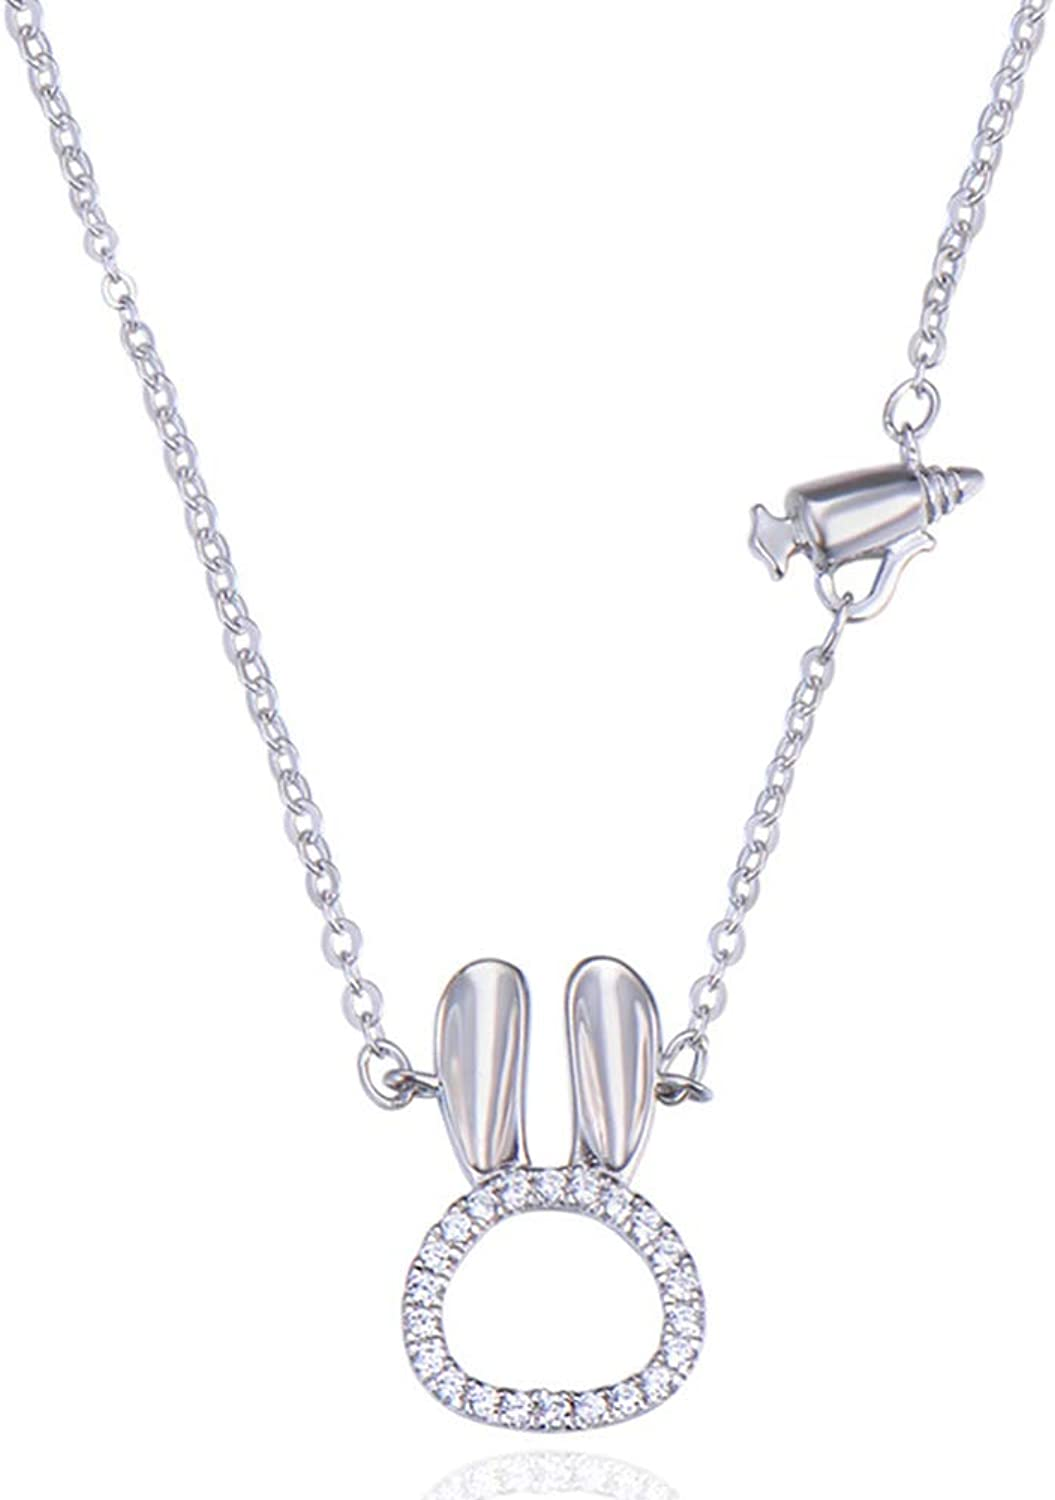 925 Sterling Silver Bunny Ladies Necklace, HandSet Zircon Craft, Tail Chain Long Chain Design Adjustable Length